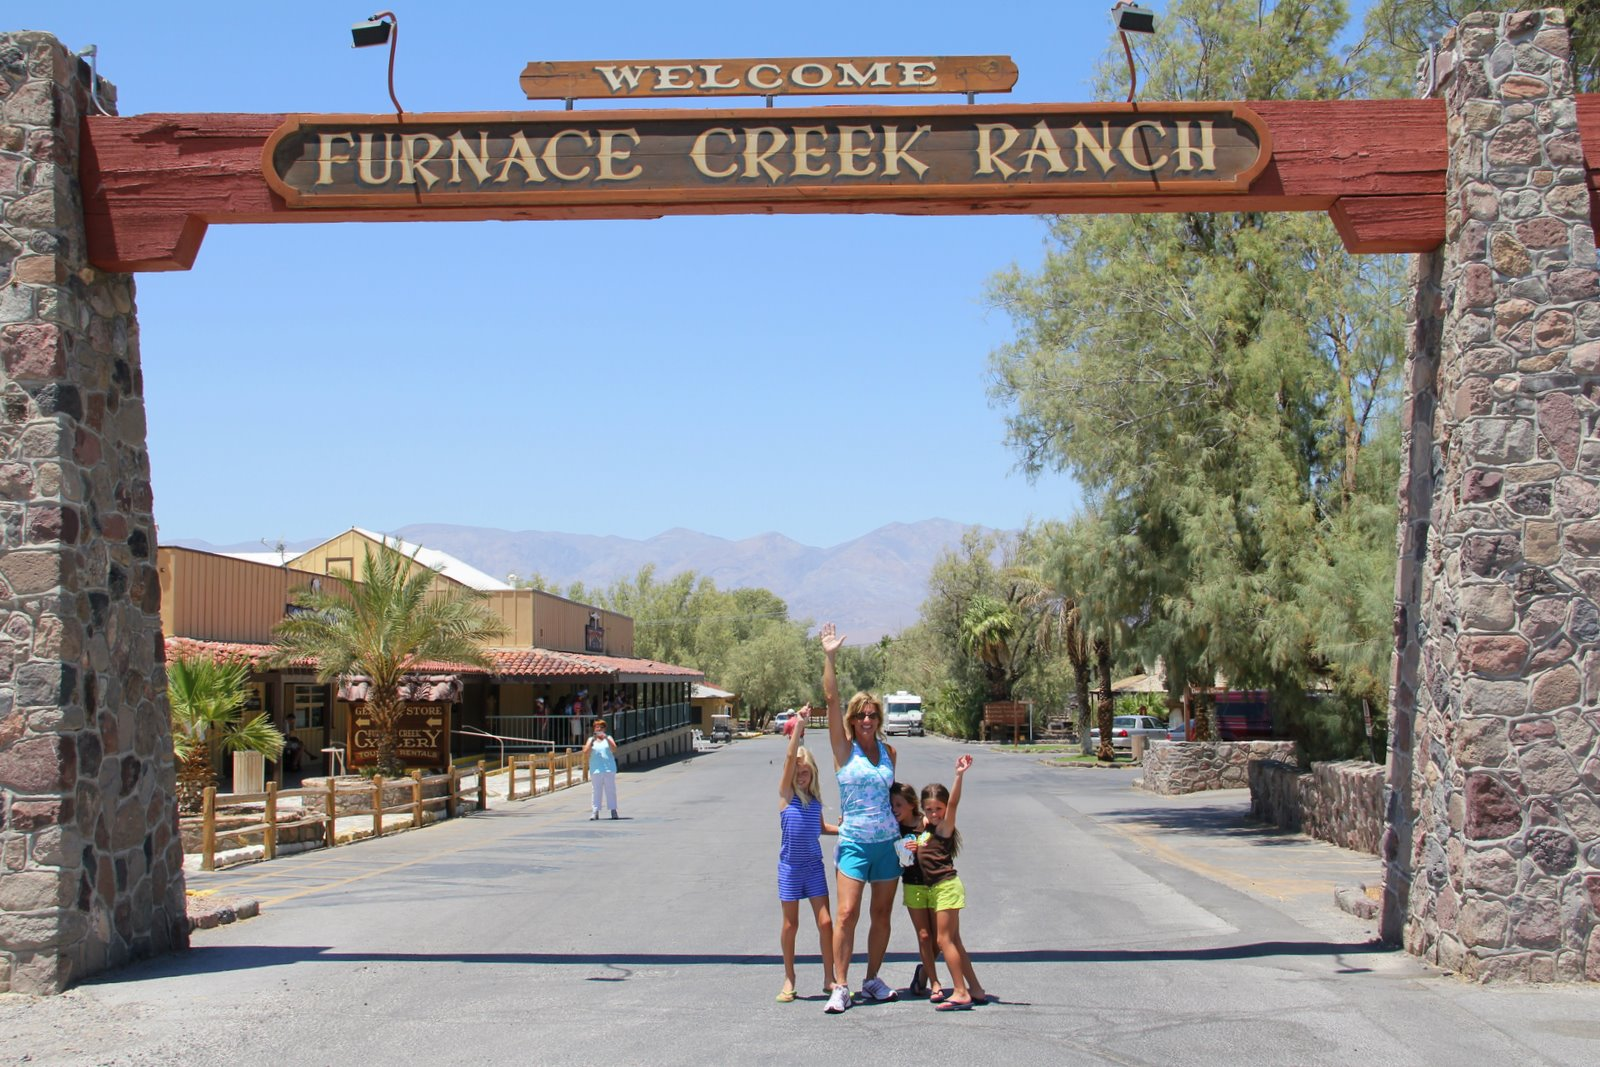 The Western Swing Farewell To The Furnace Creek Ranch